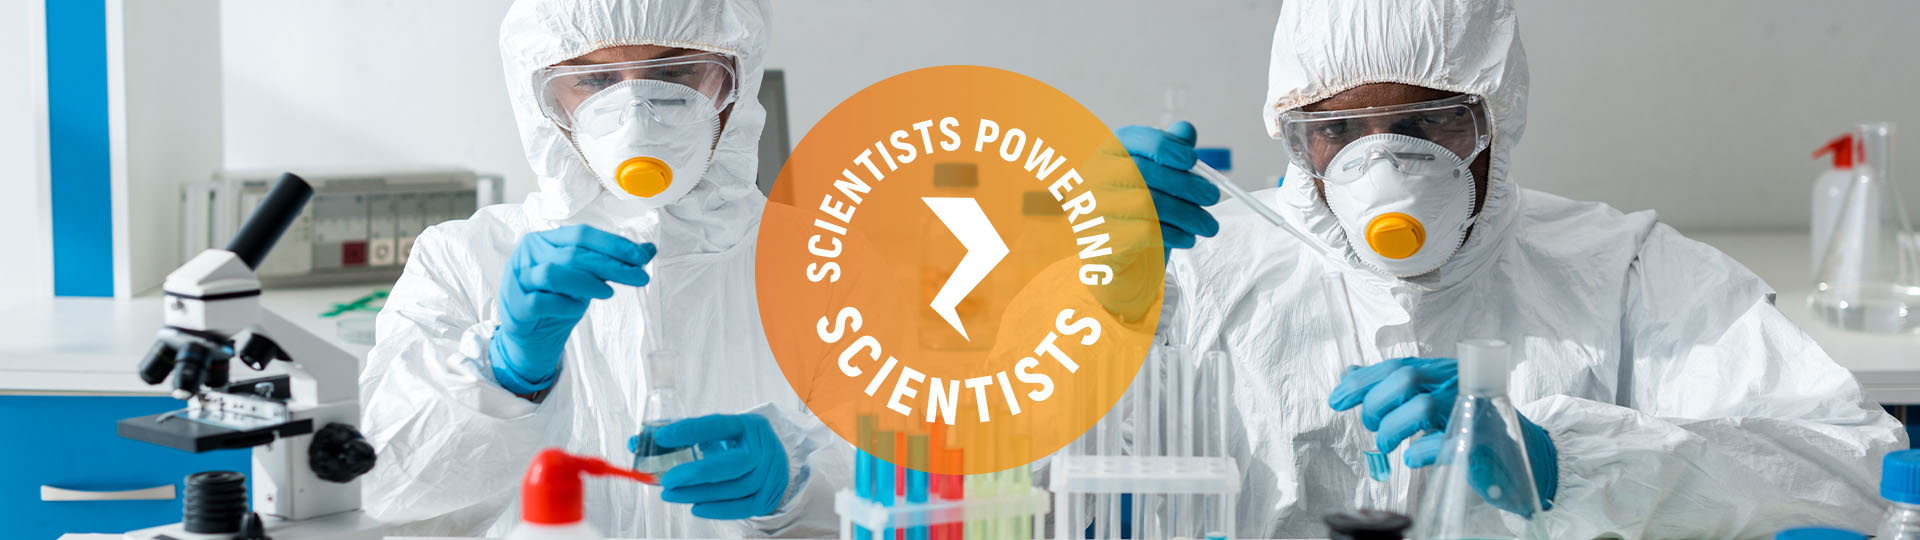 pace-scientists-powering-scientists